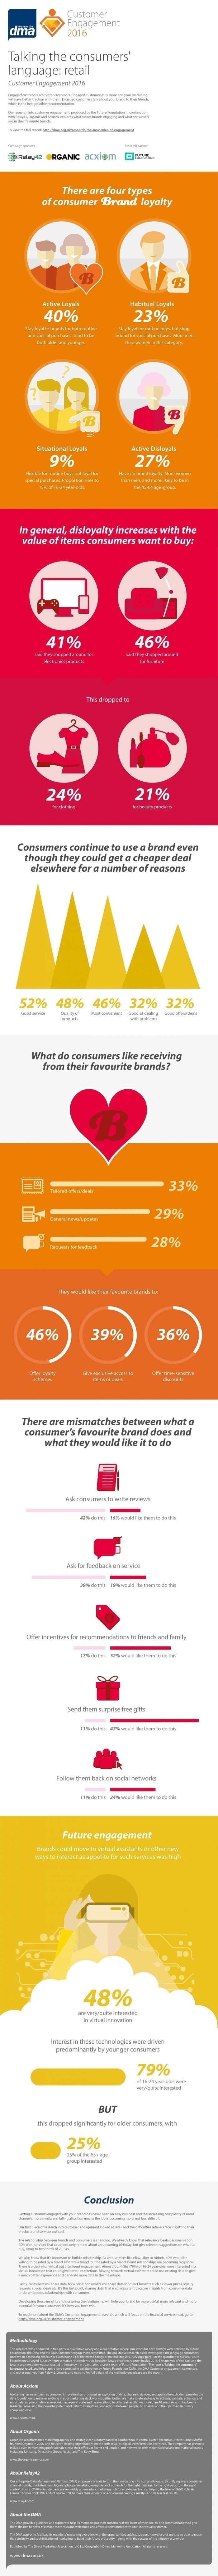 The Importance of Different Types of Retail Loyalty [Infographic]